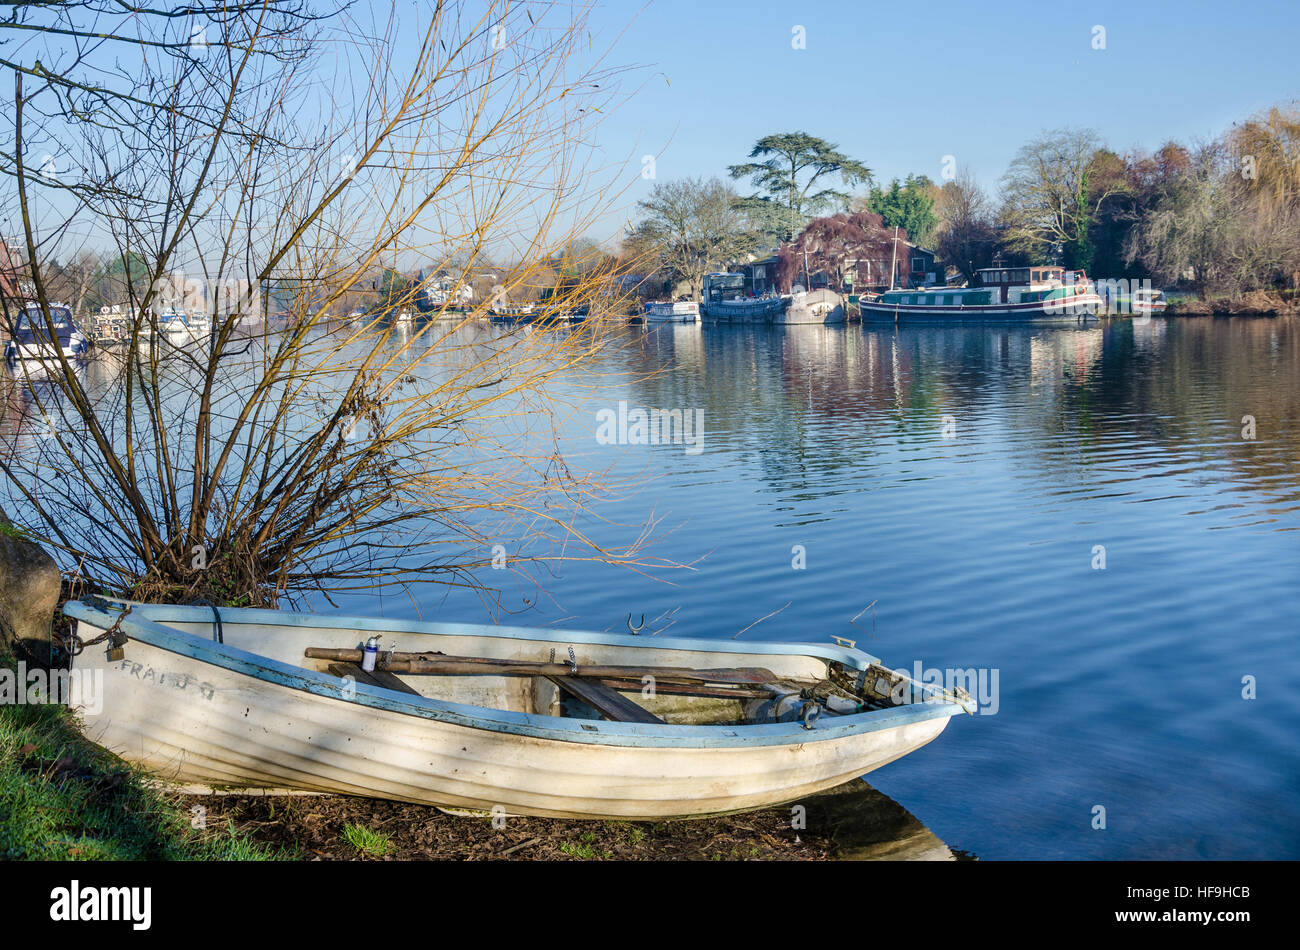 A rowing boat is chained up to a tree on the bank of The River Thames at Old Windsor in Berkshire, UK. - Stock Image